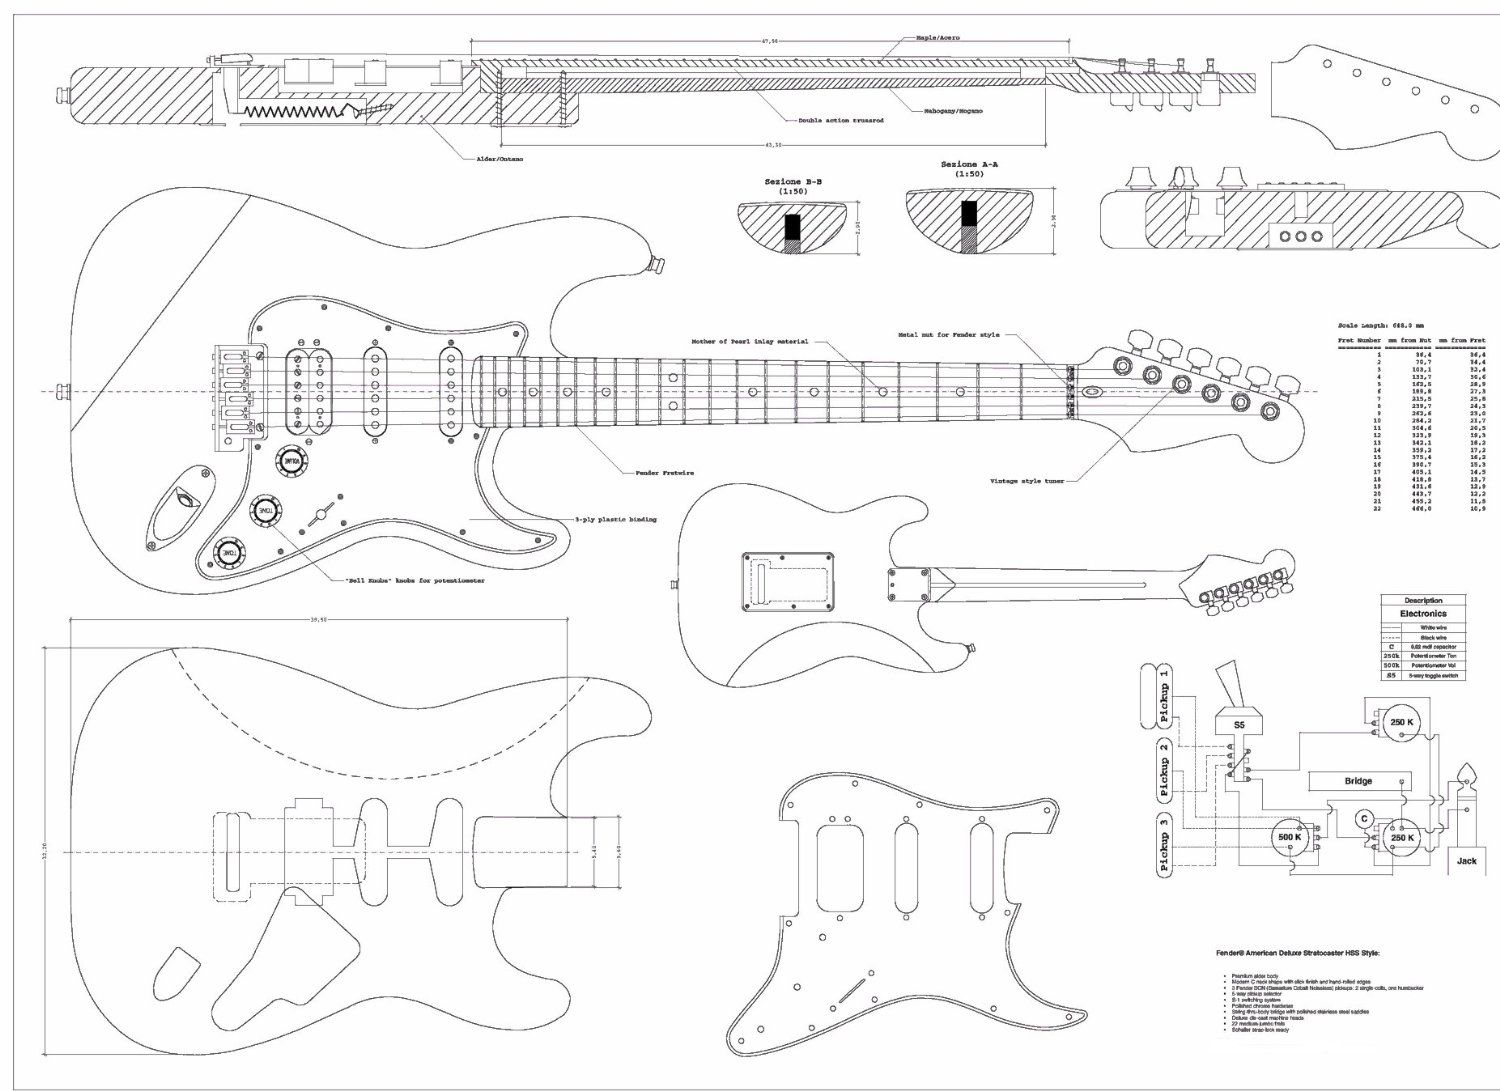 Images Of Wiring Diagram For Stratocaster Fender Guitars Schematic Guitar And Fender Stratocaster Fender Guitars Guitar Pickups